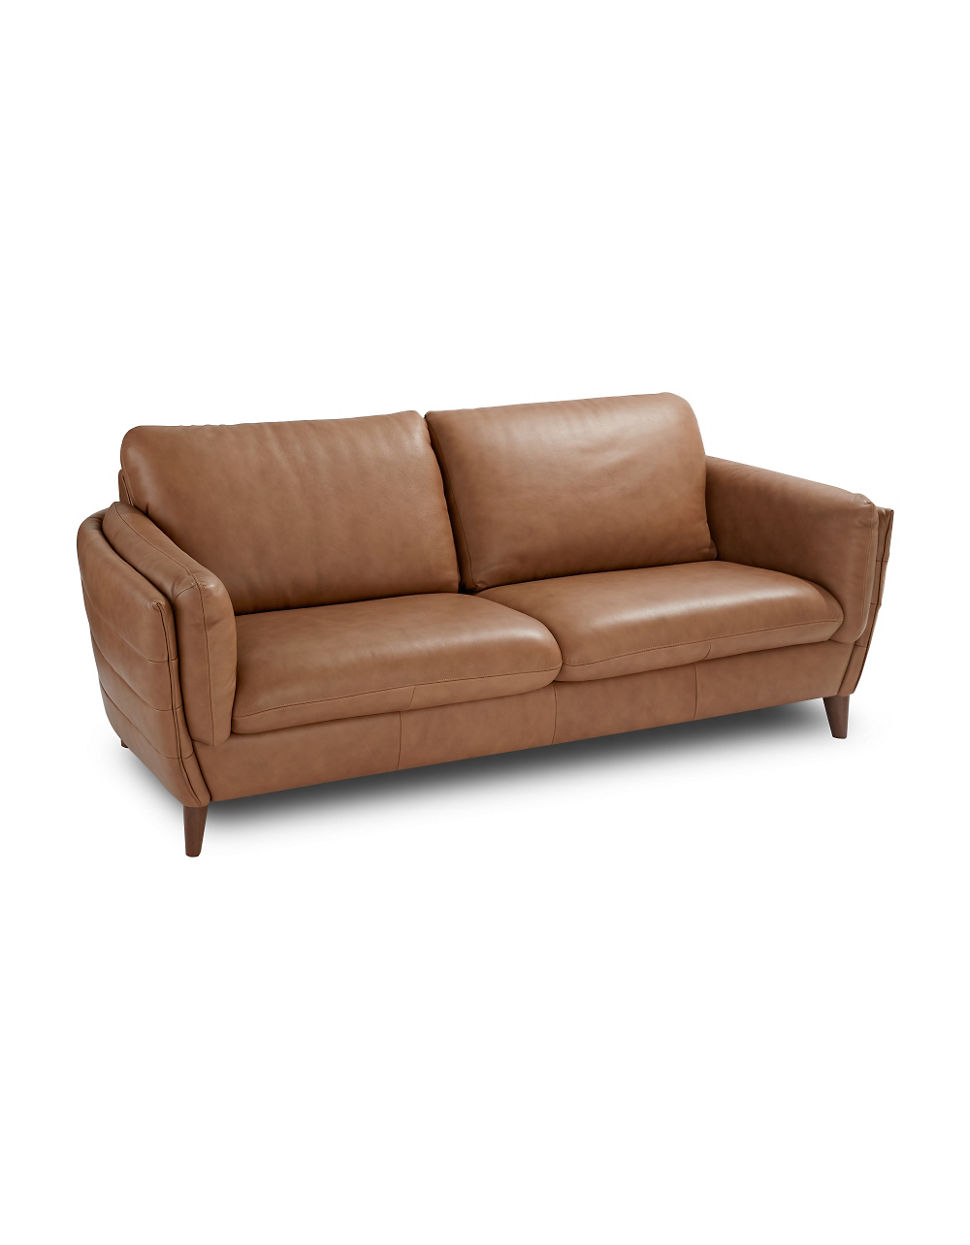 Sears natuzzi leather sofa sears natuzzi sectional sofa for Natuzzi leather sofa